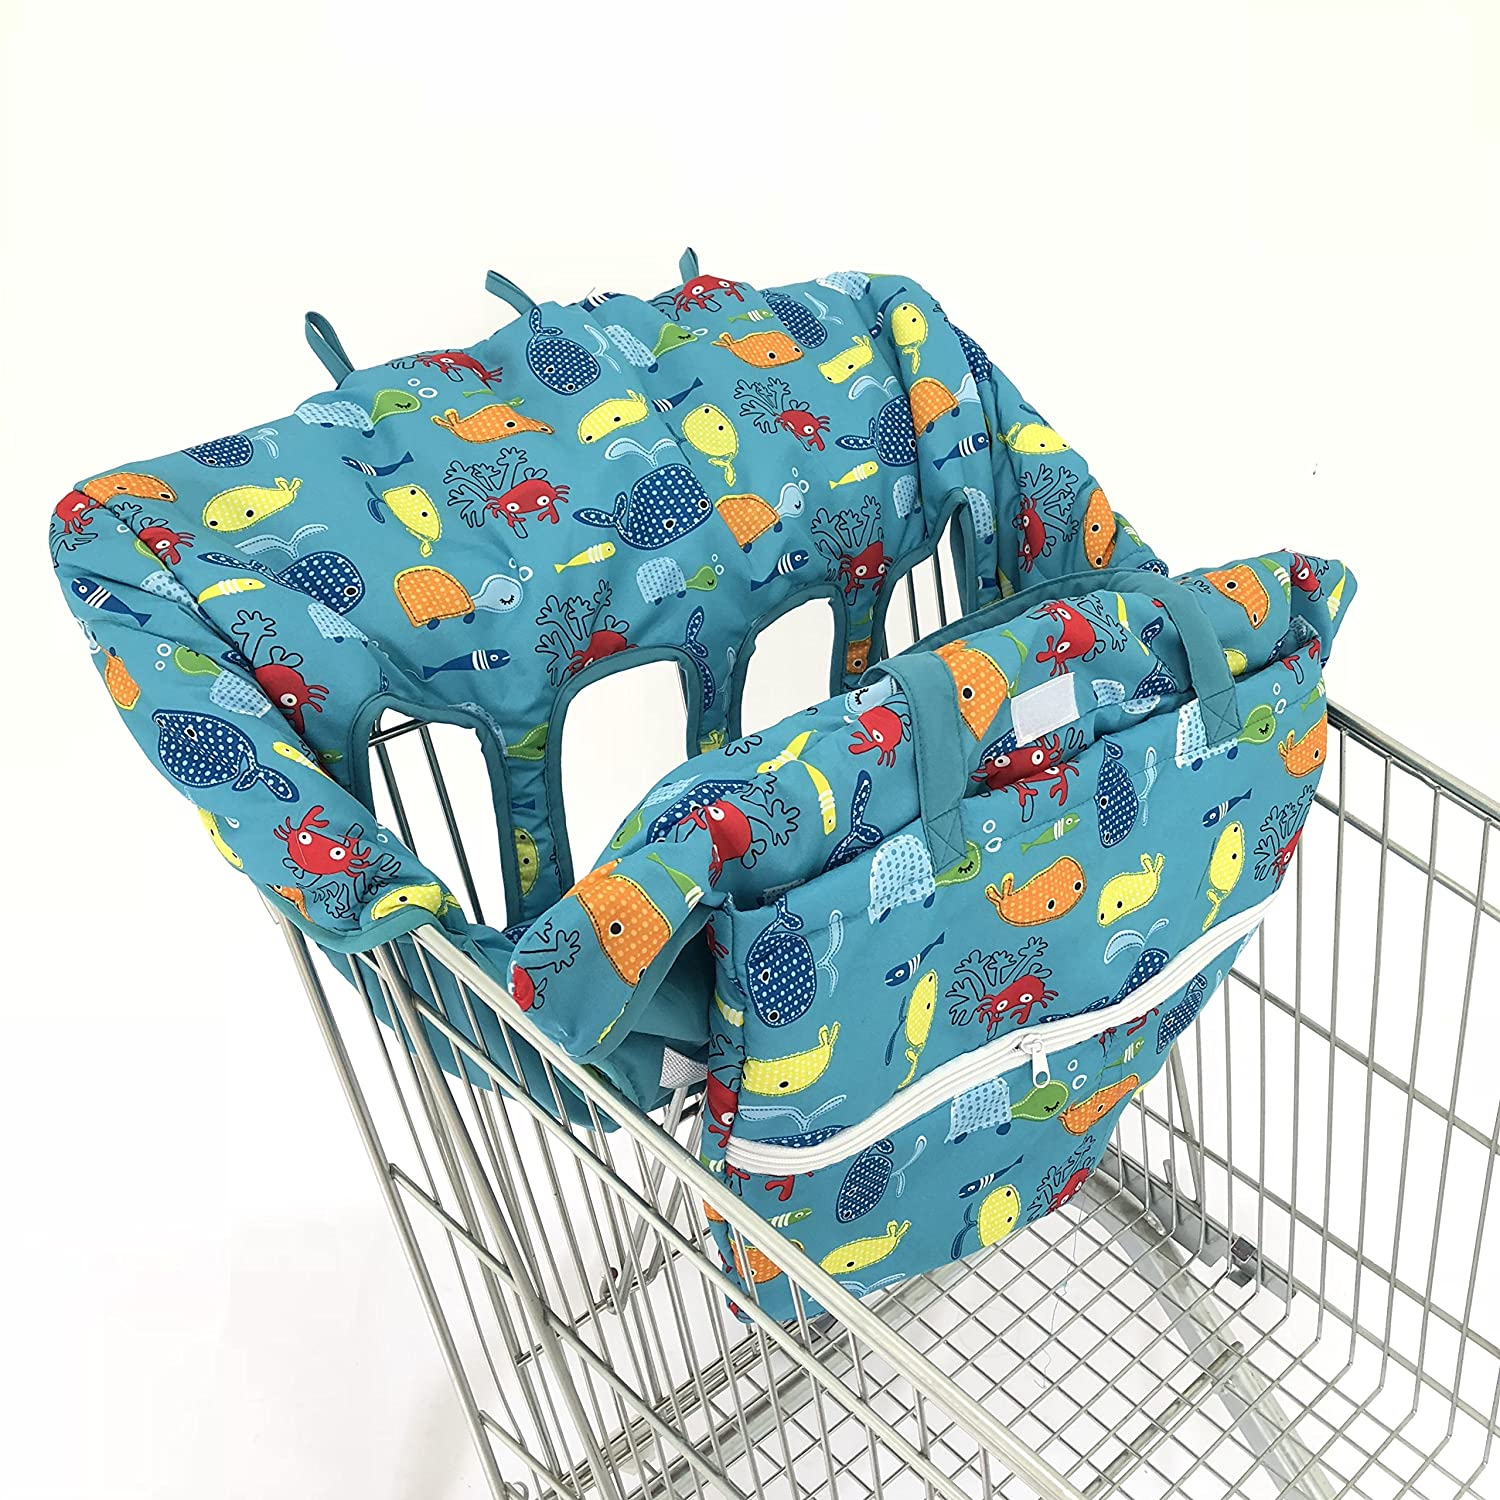 4 Legs Holes Double Babies Shopping Cart Cover for Twin or Baby Siblings. X-Large Size That was Guaranteed to Fit Wholesale Warehouse Grocery Stores (Submarine World) SEALOVESFLOWER